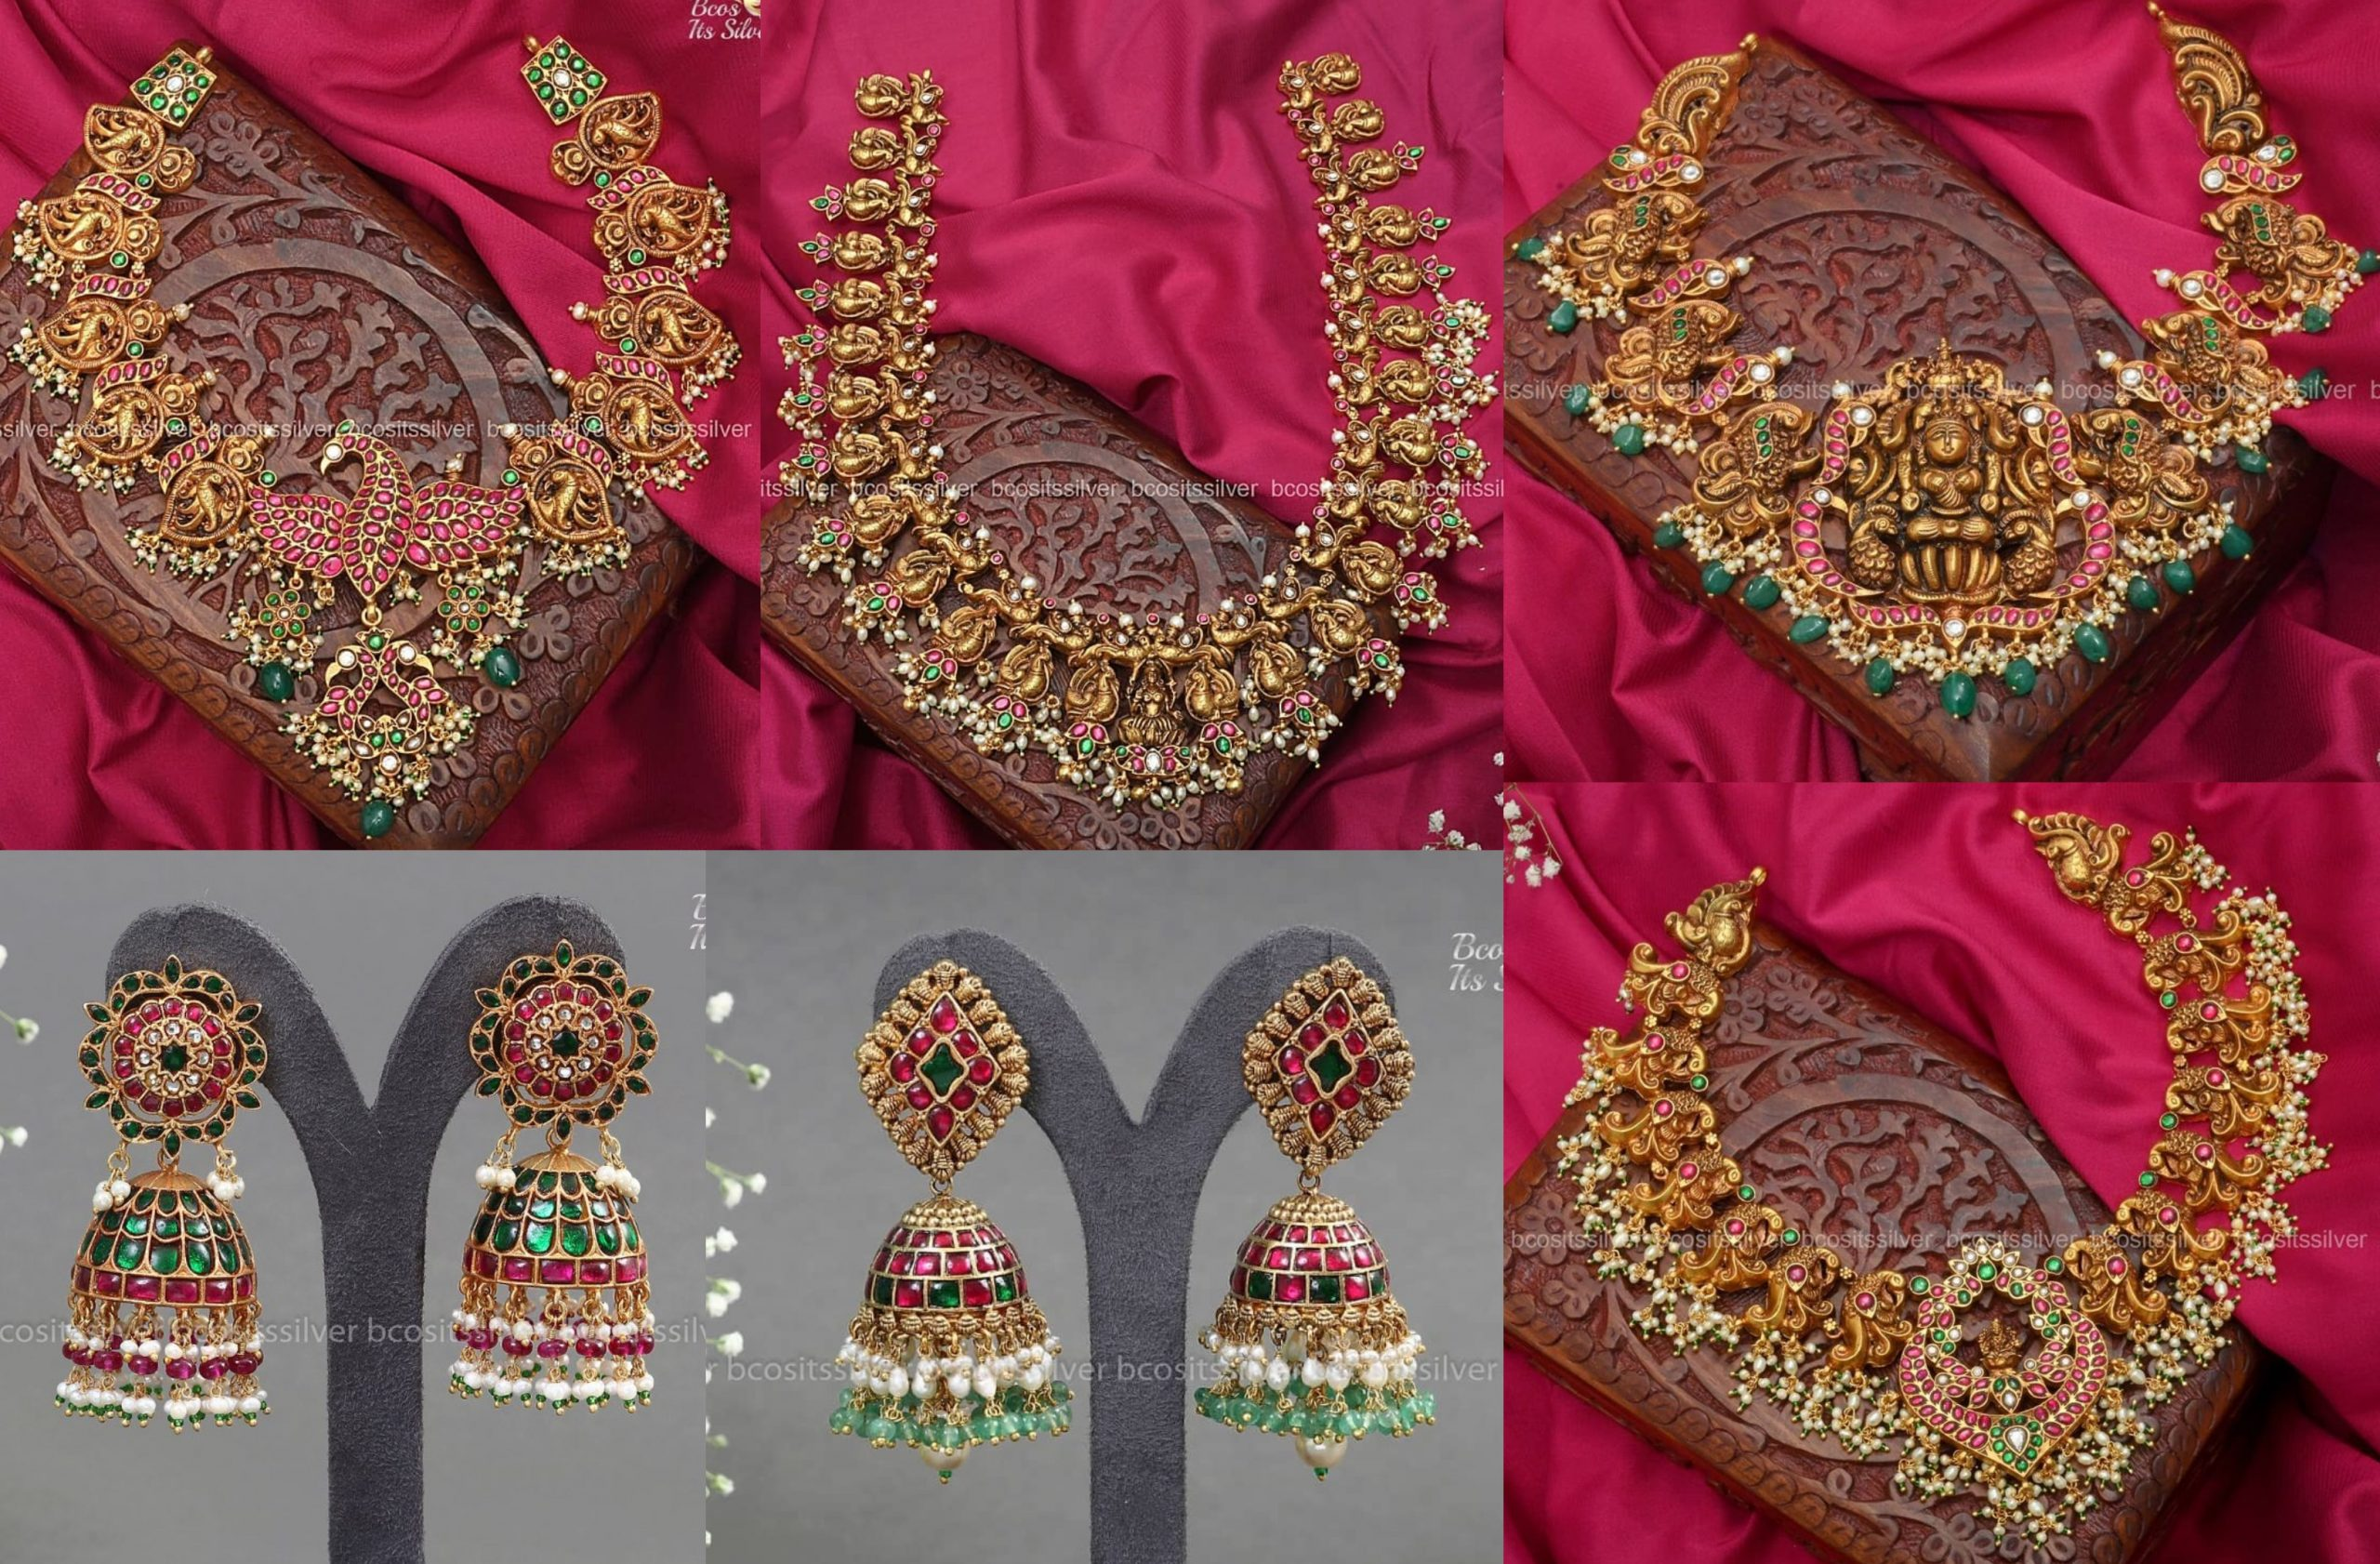 Temple Antique Design Collection From Bcos Its Silver!